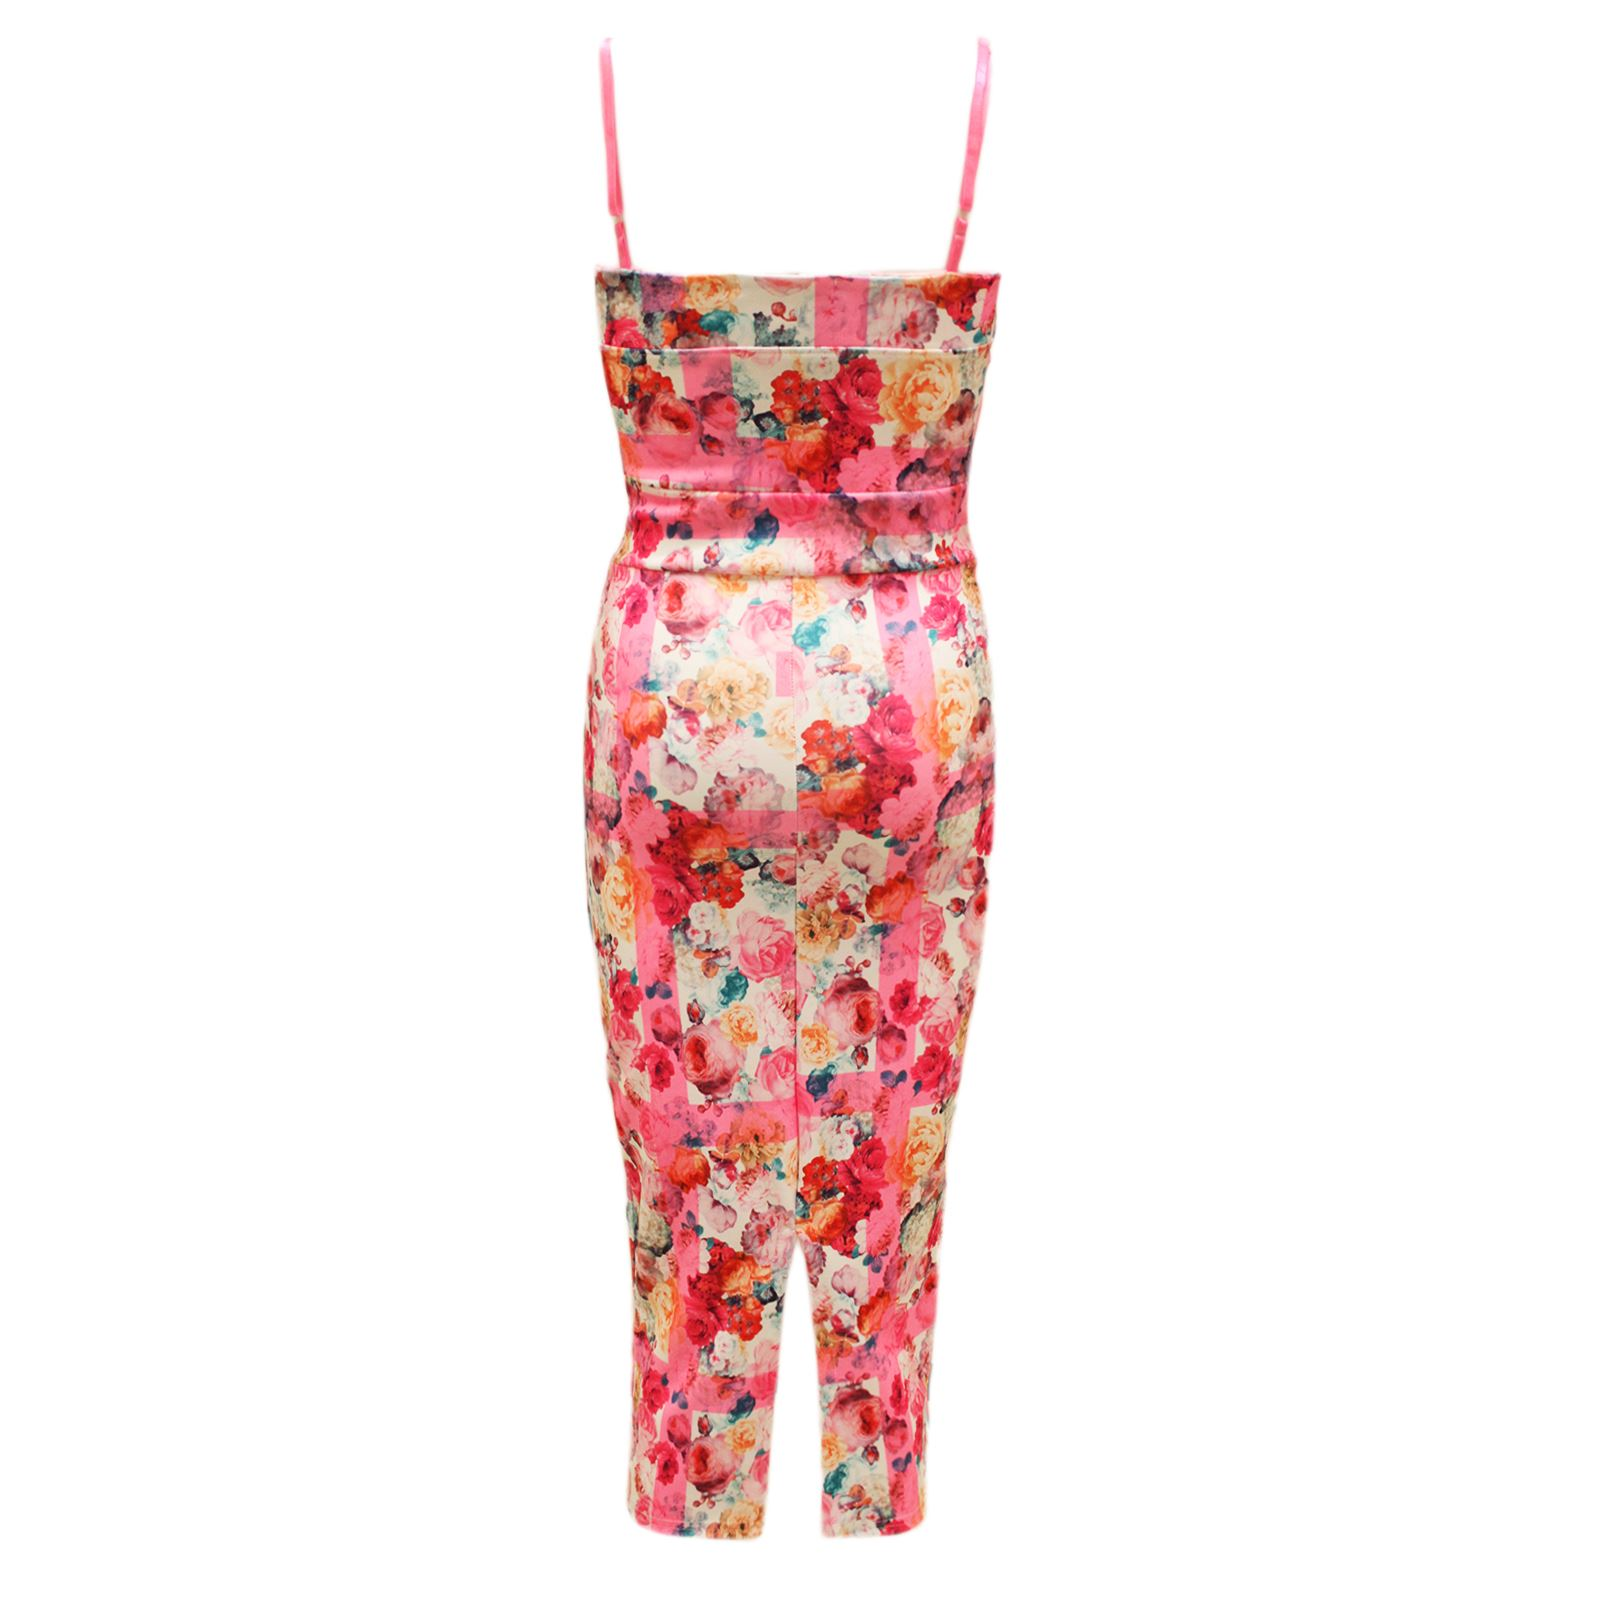 New-Womens-Celeb-Style-Strappy-Tropical-Floral-Print-Bodycon-Party-Midi-Dress